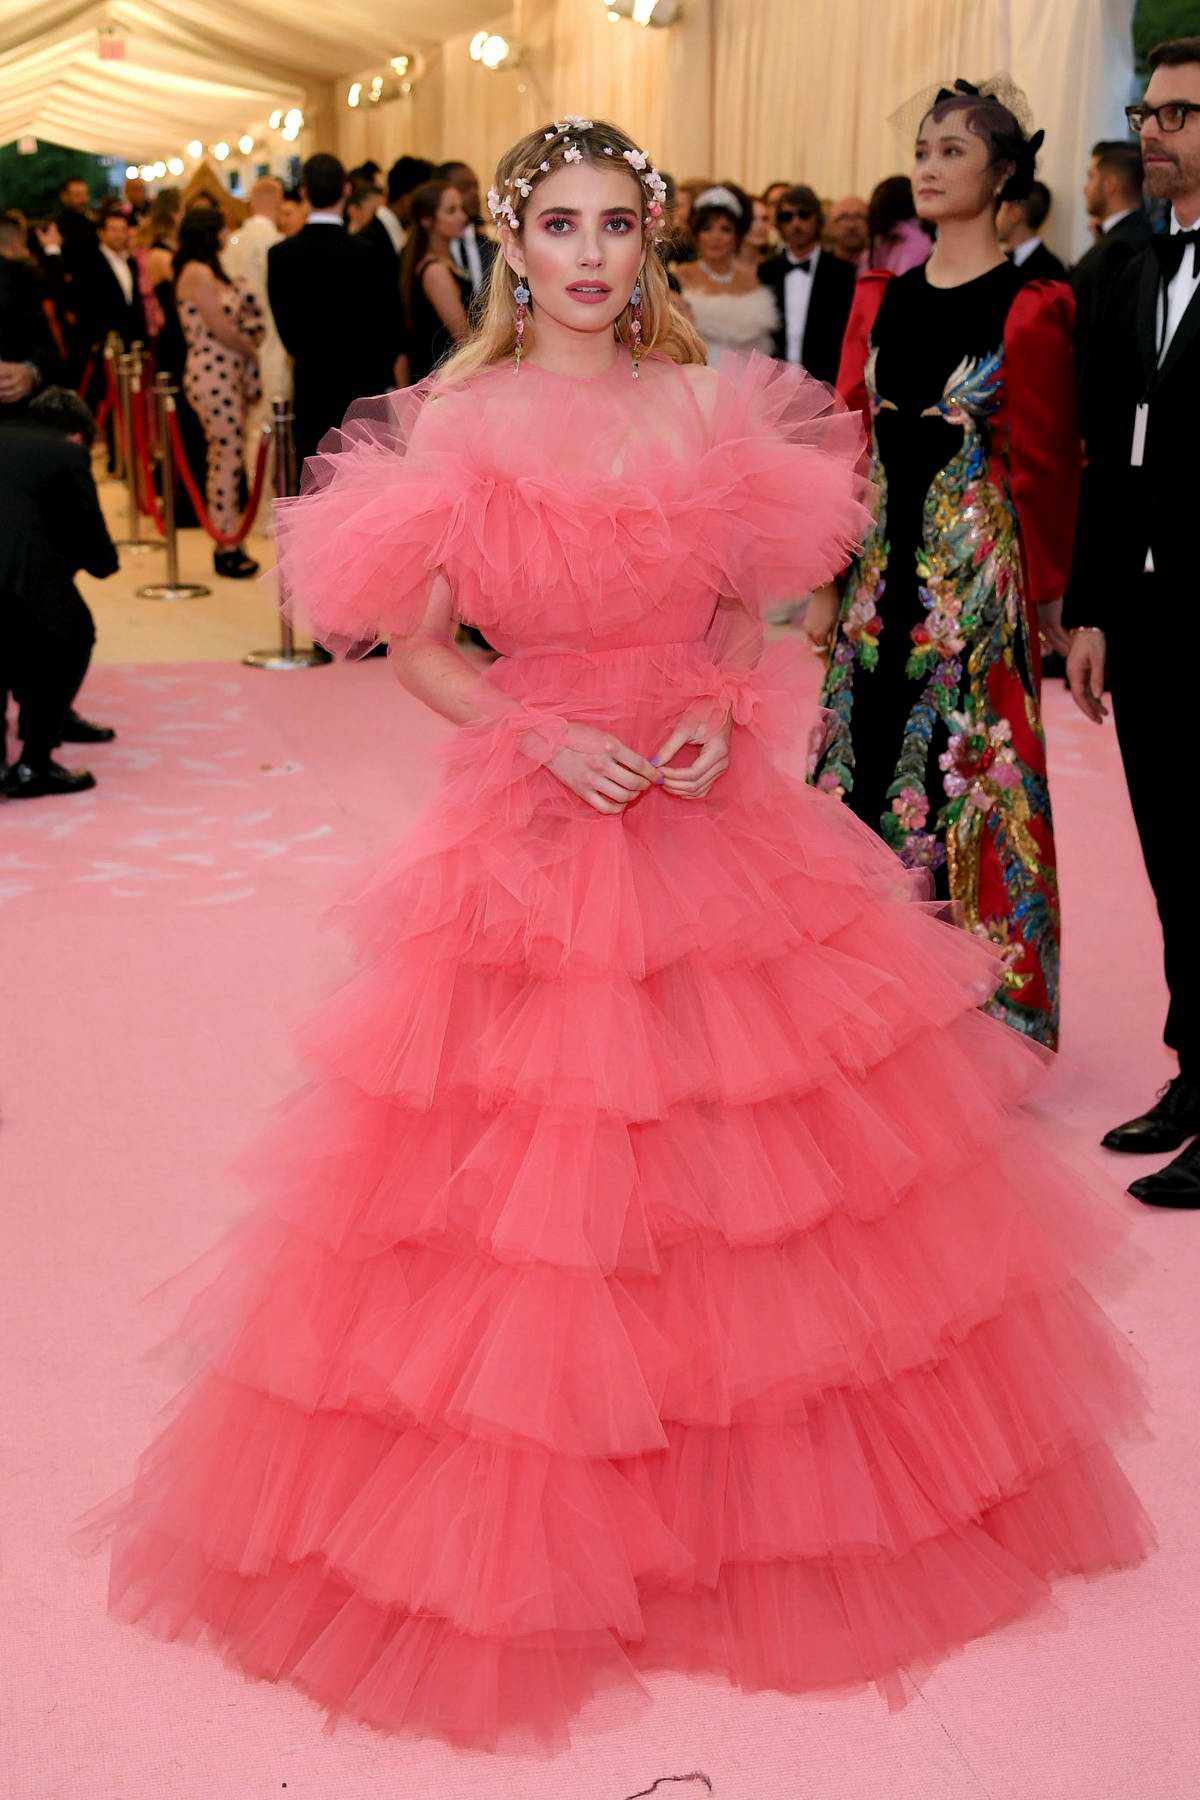 Emma Roberts attends The 2019 Met Gala Celebrating Camp: Notes on Fashion in New York City